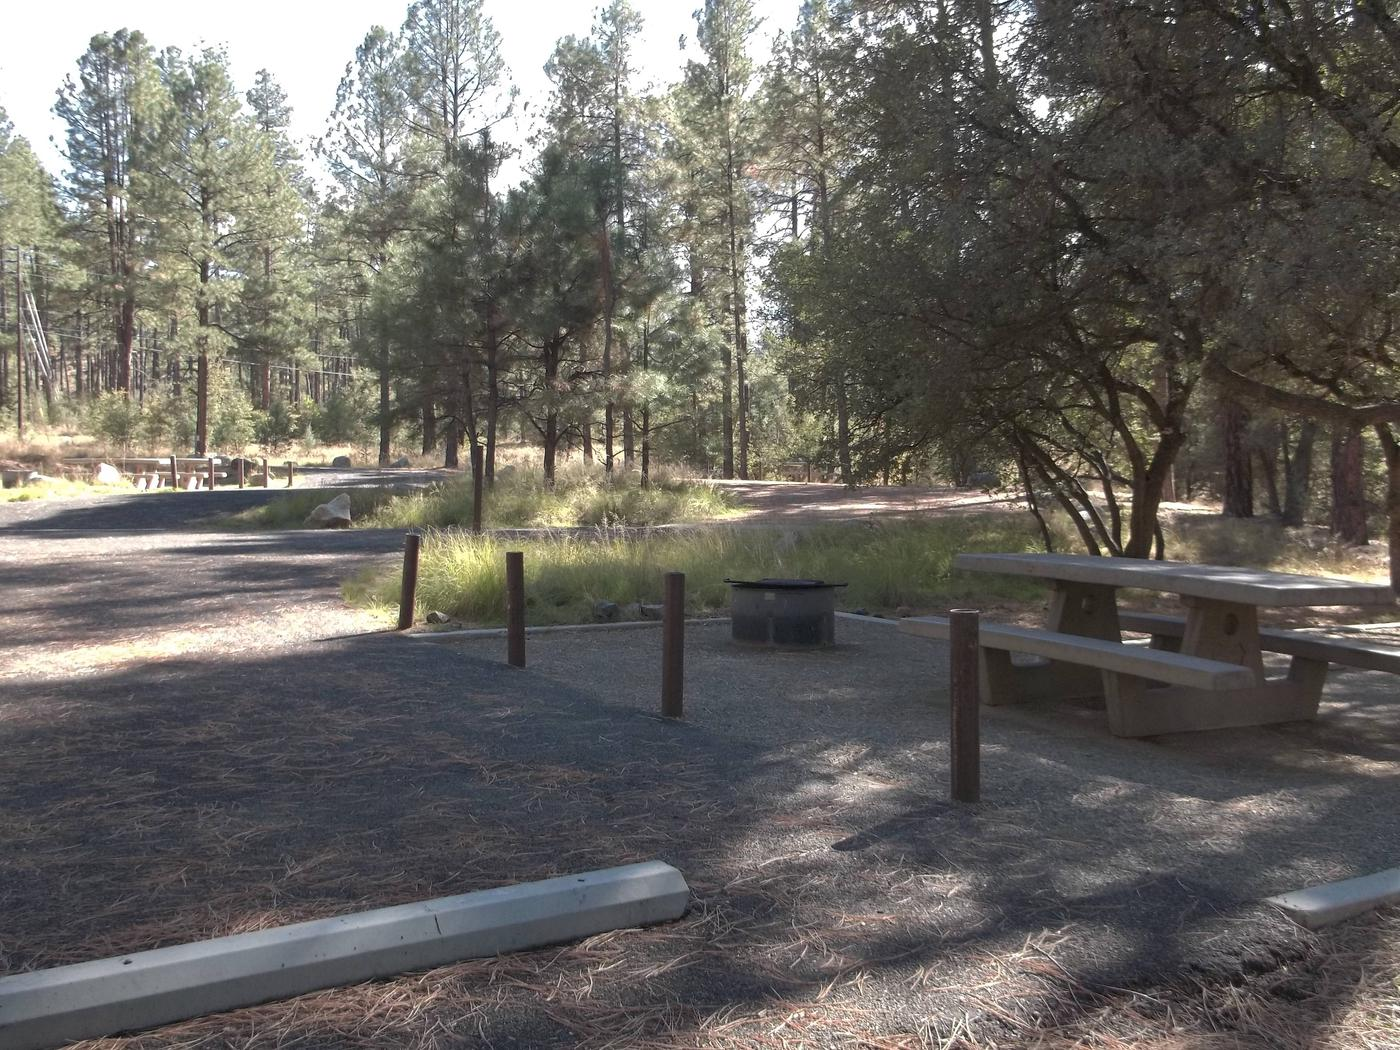 Heavily shaded White Spar Accessible Site 19 Back-in paved parking with gravel picnic area.White Spar Site 19